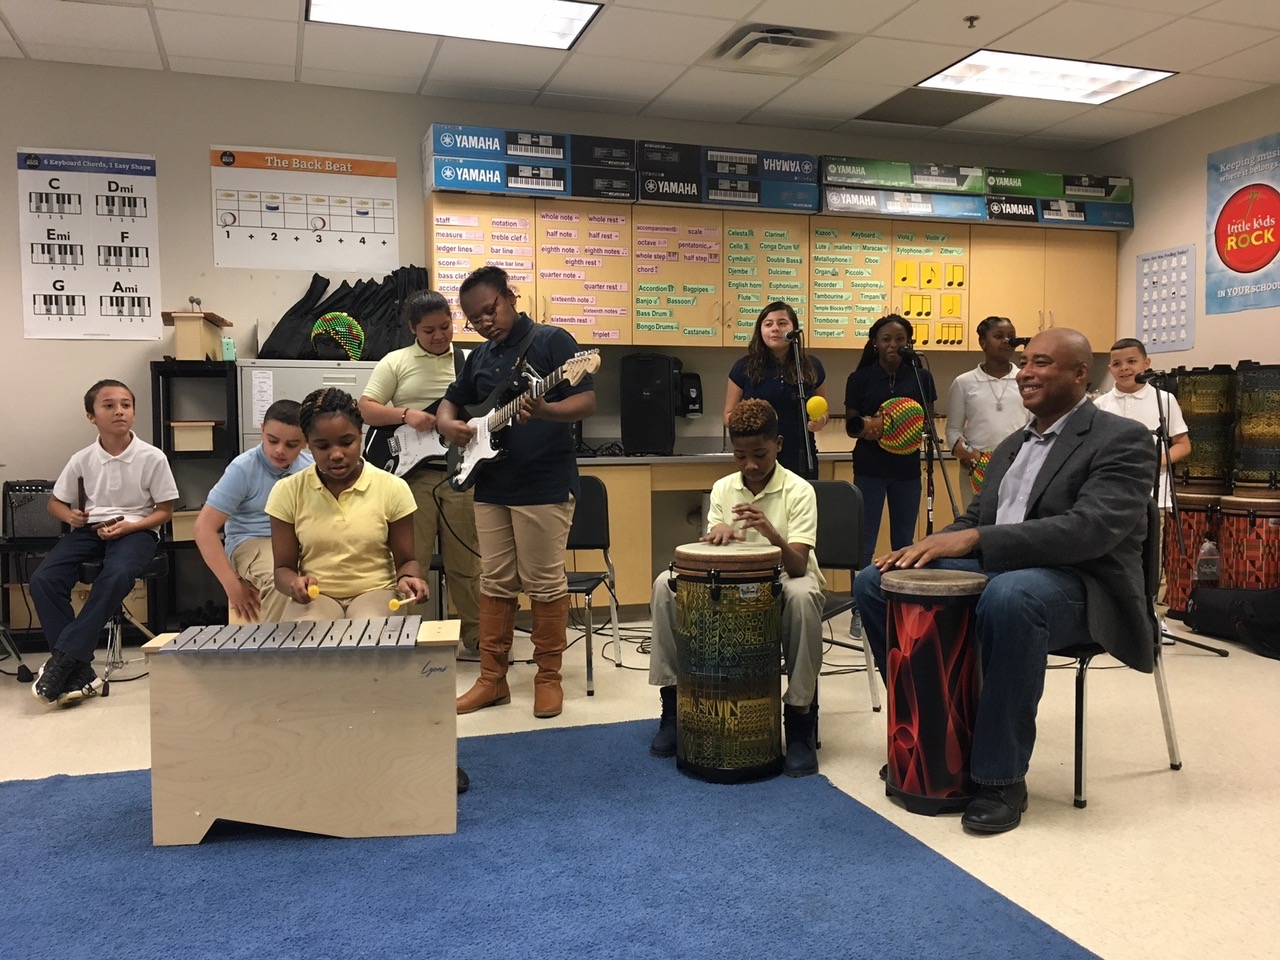 Inspiring America: Beloved Baseball Star Brings Arts to Schools